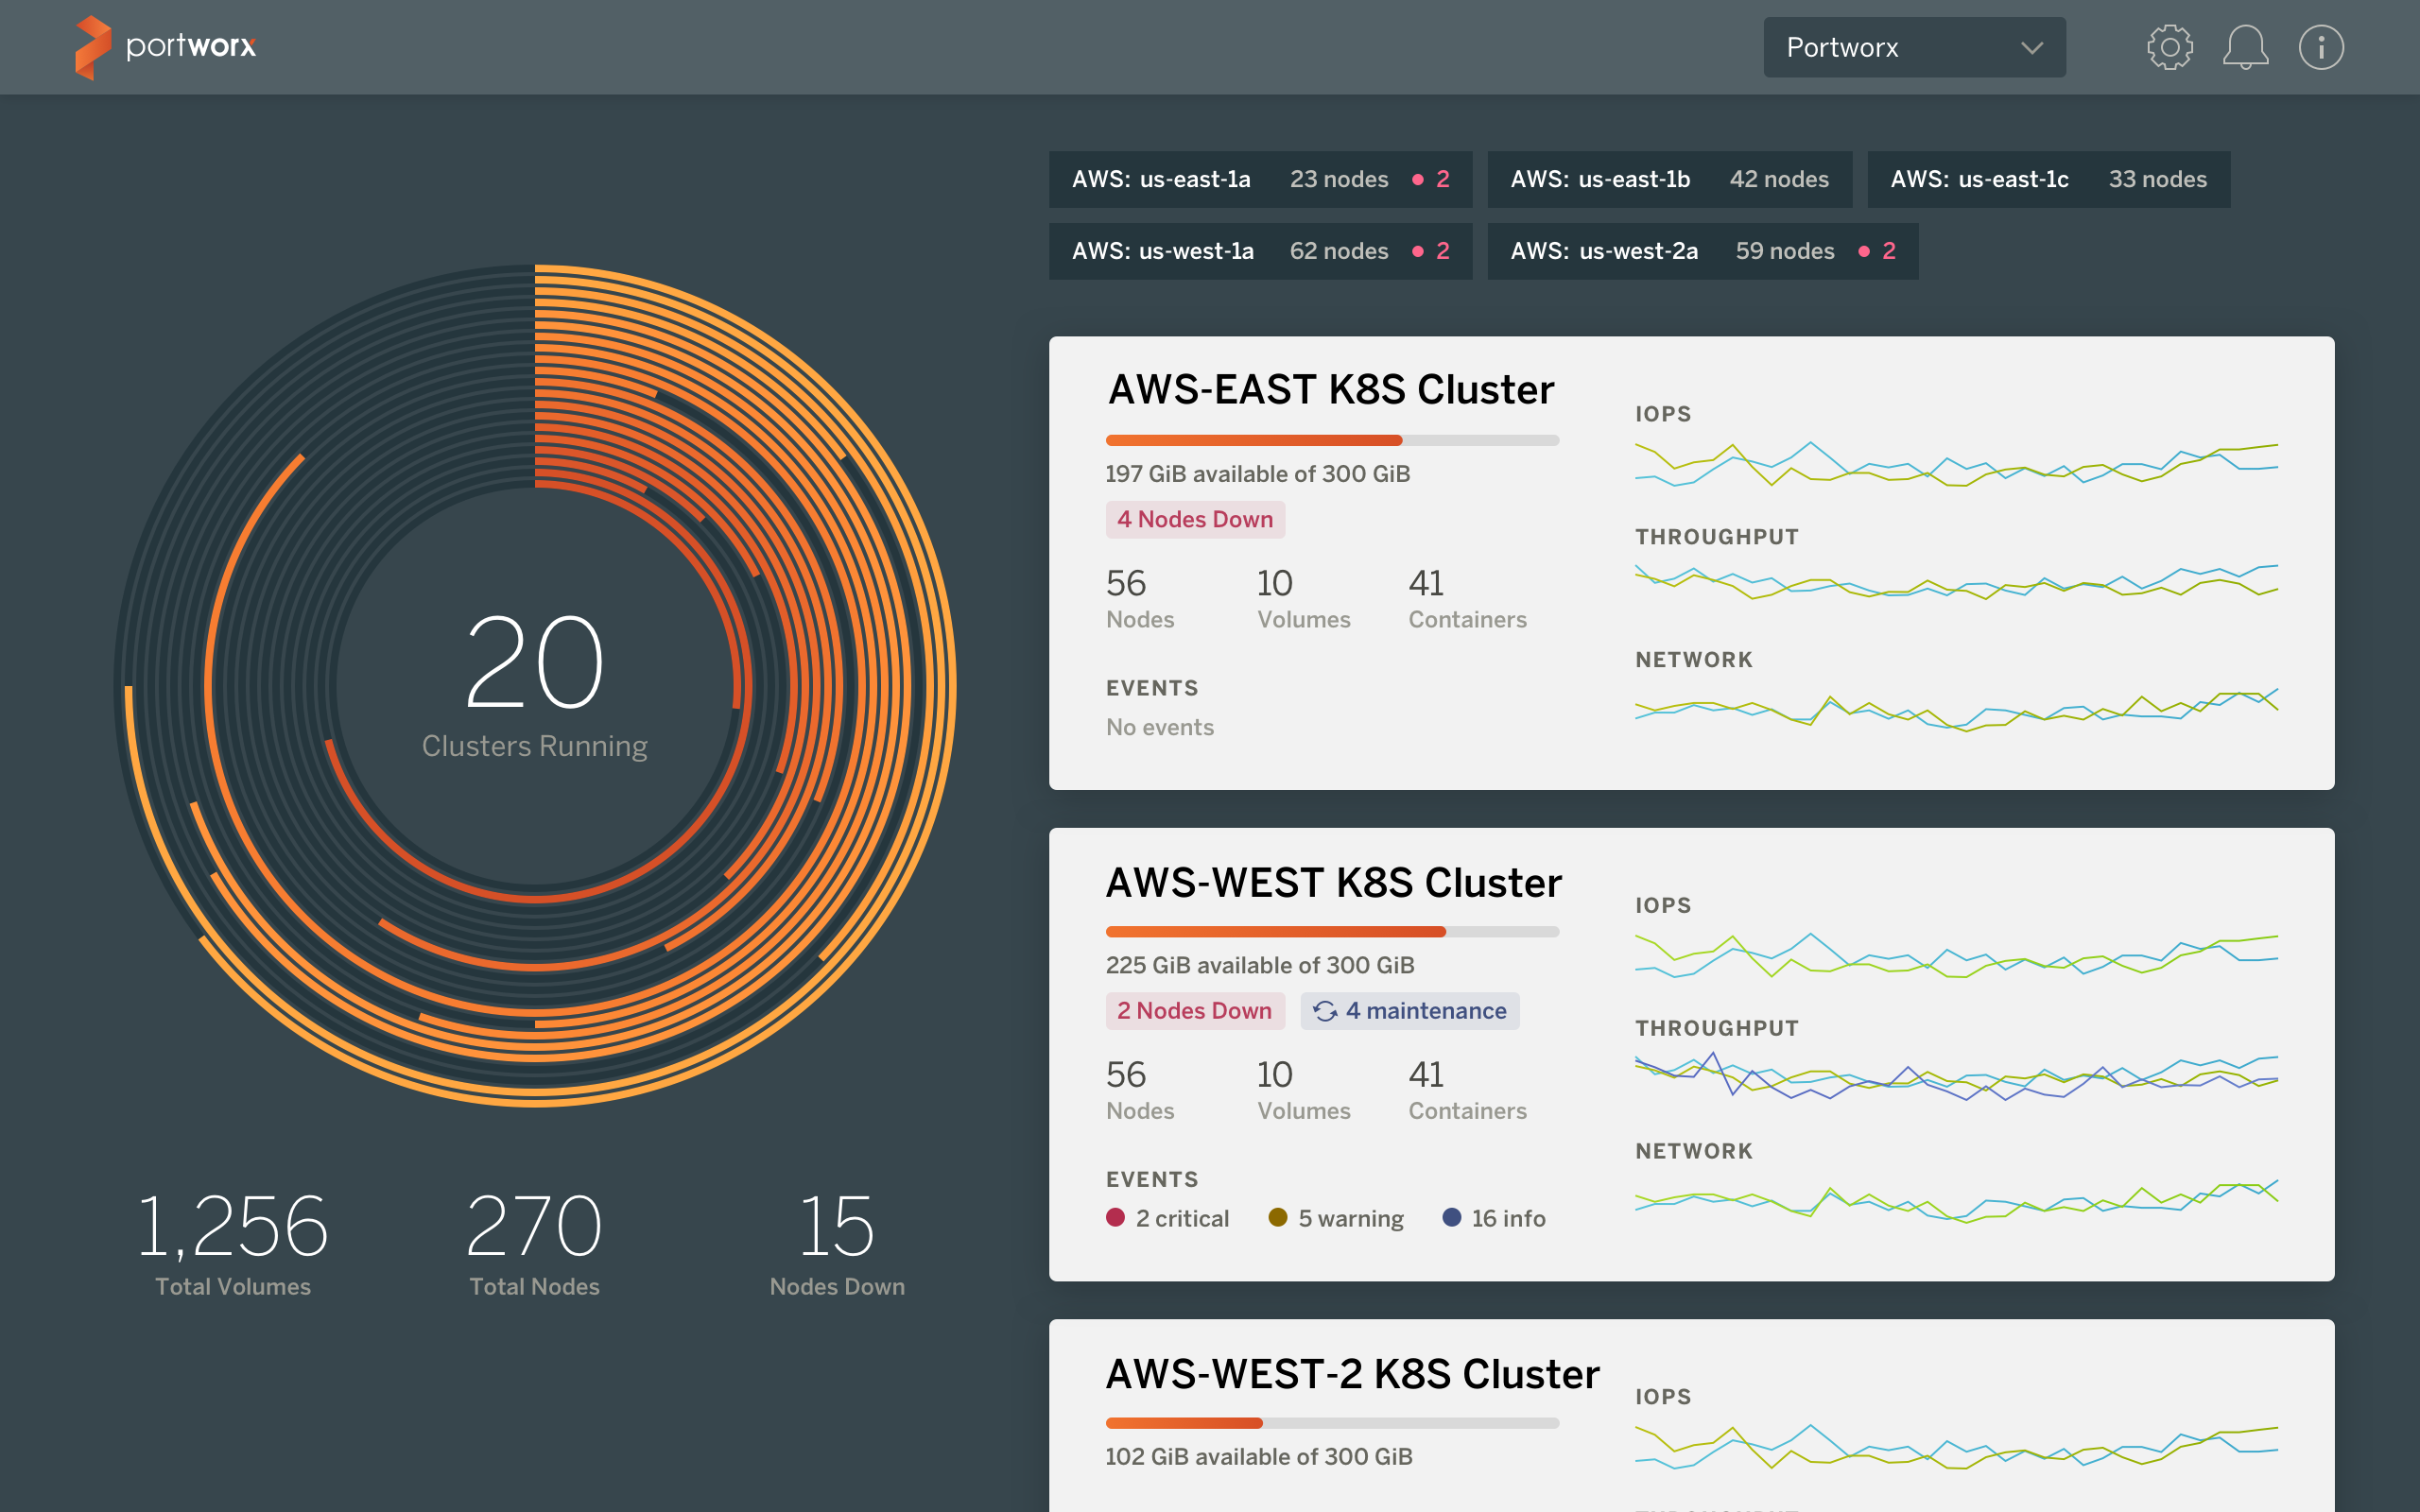 Pure Storage acquires data service platform Portworx for $370M Portworx User Interface Home